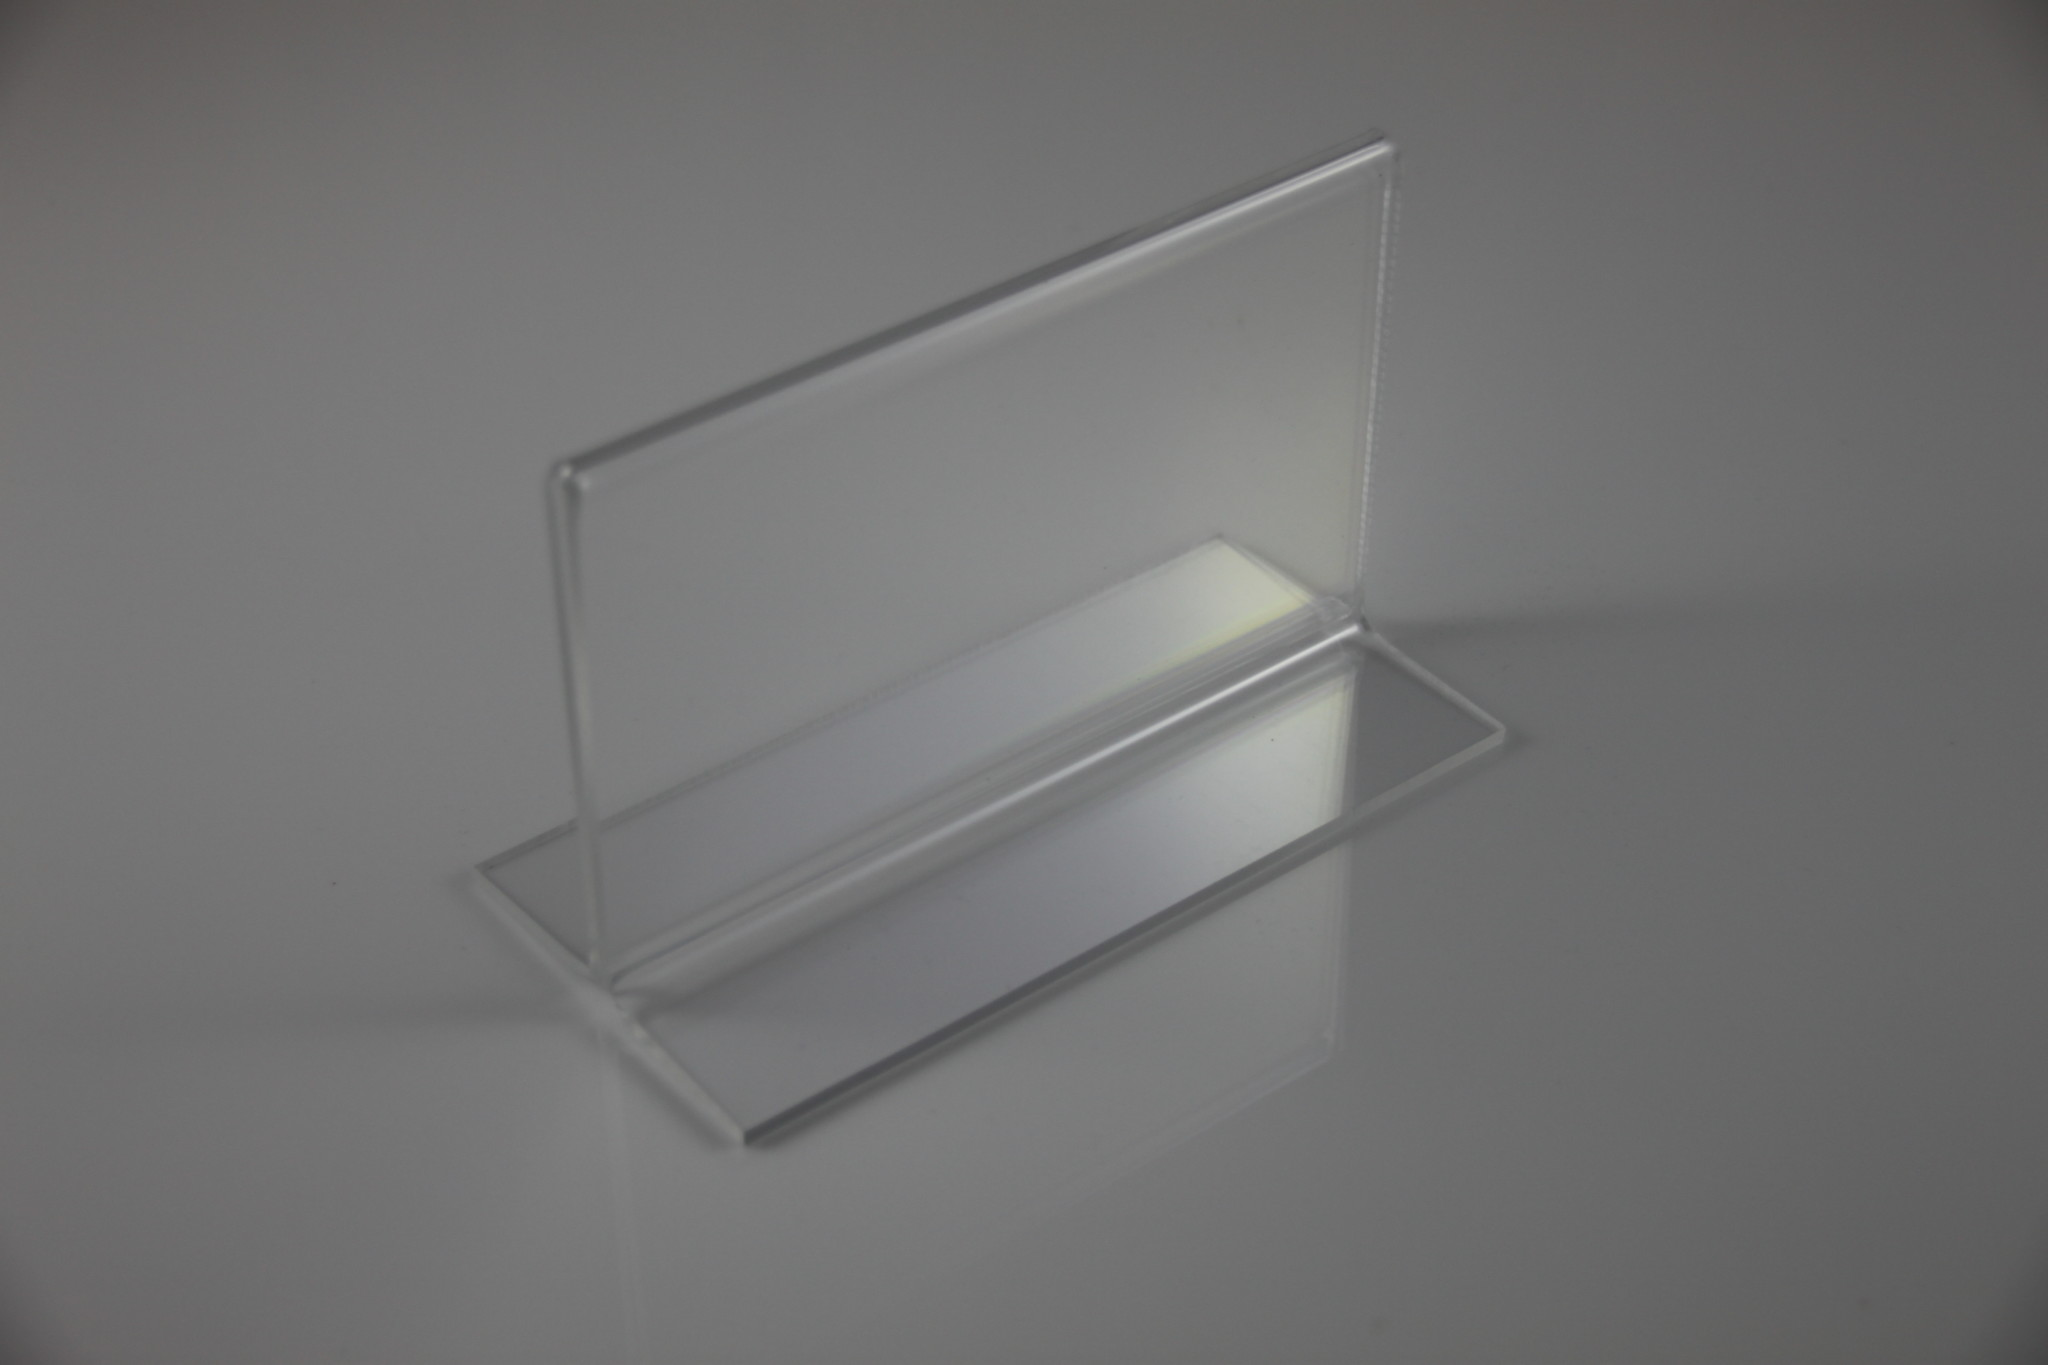 5x3 Horizontal Sign Holder Clear Acrylic T-Base Tabletop Counter ...